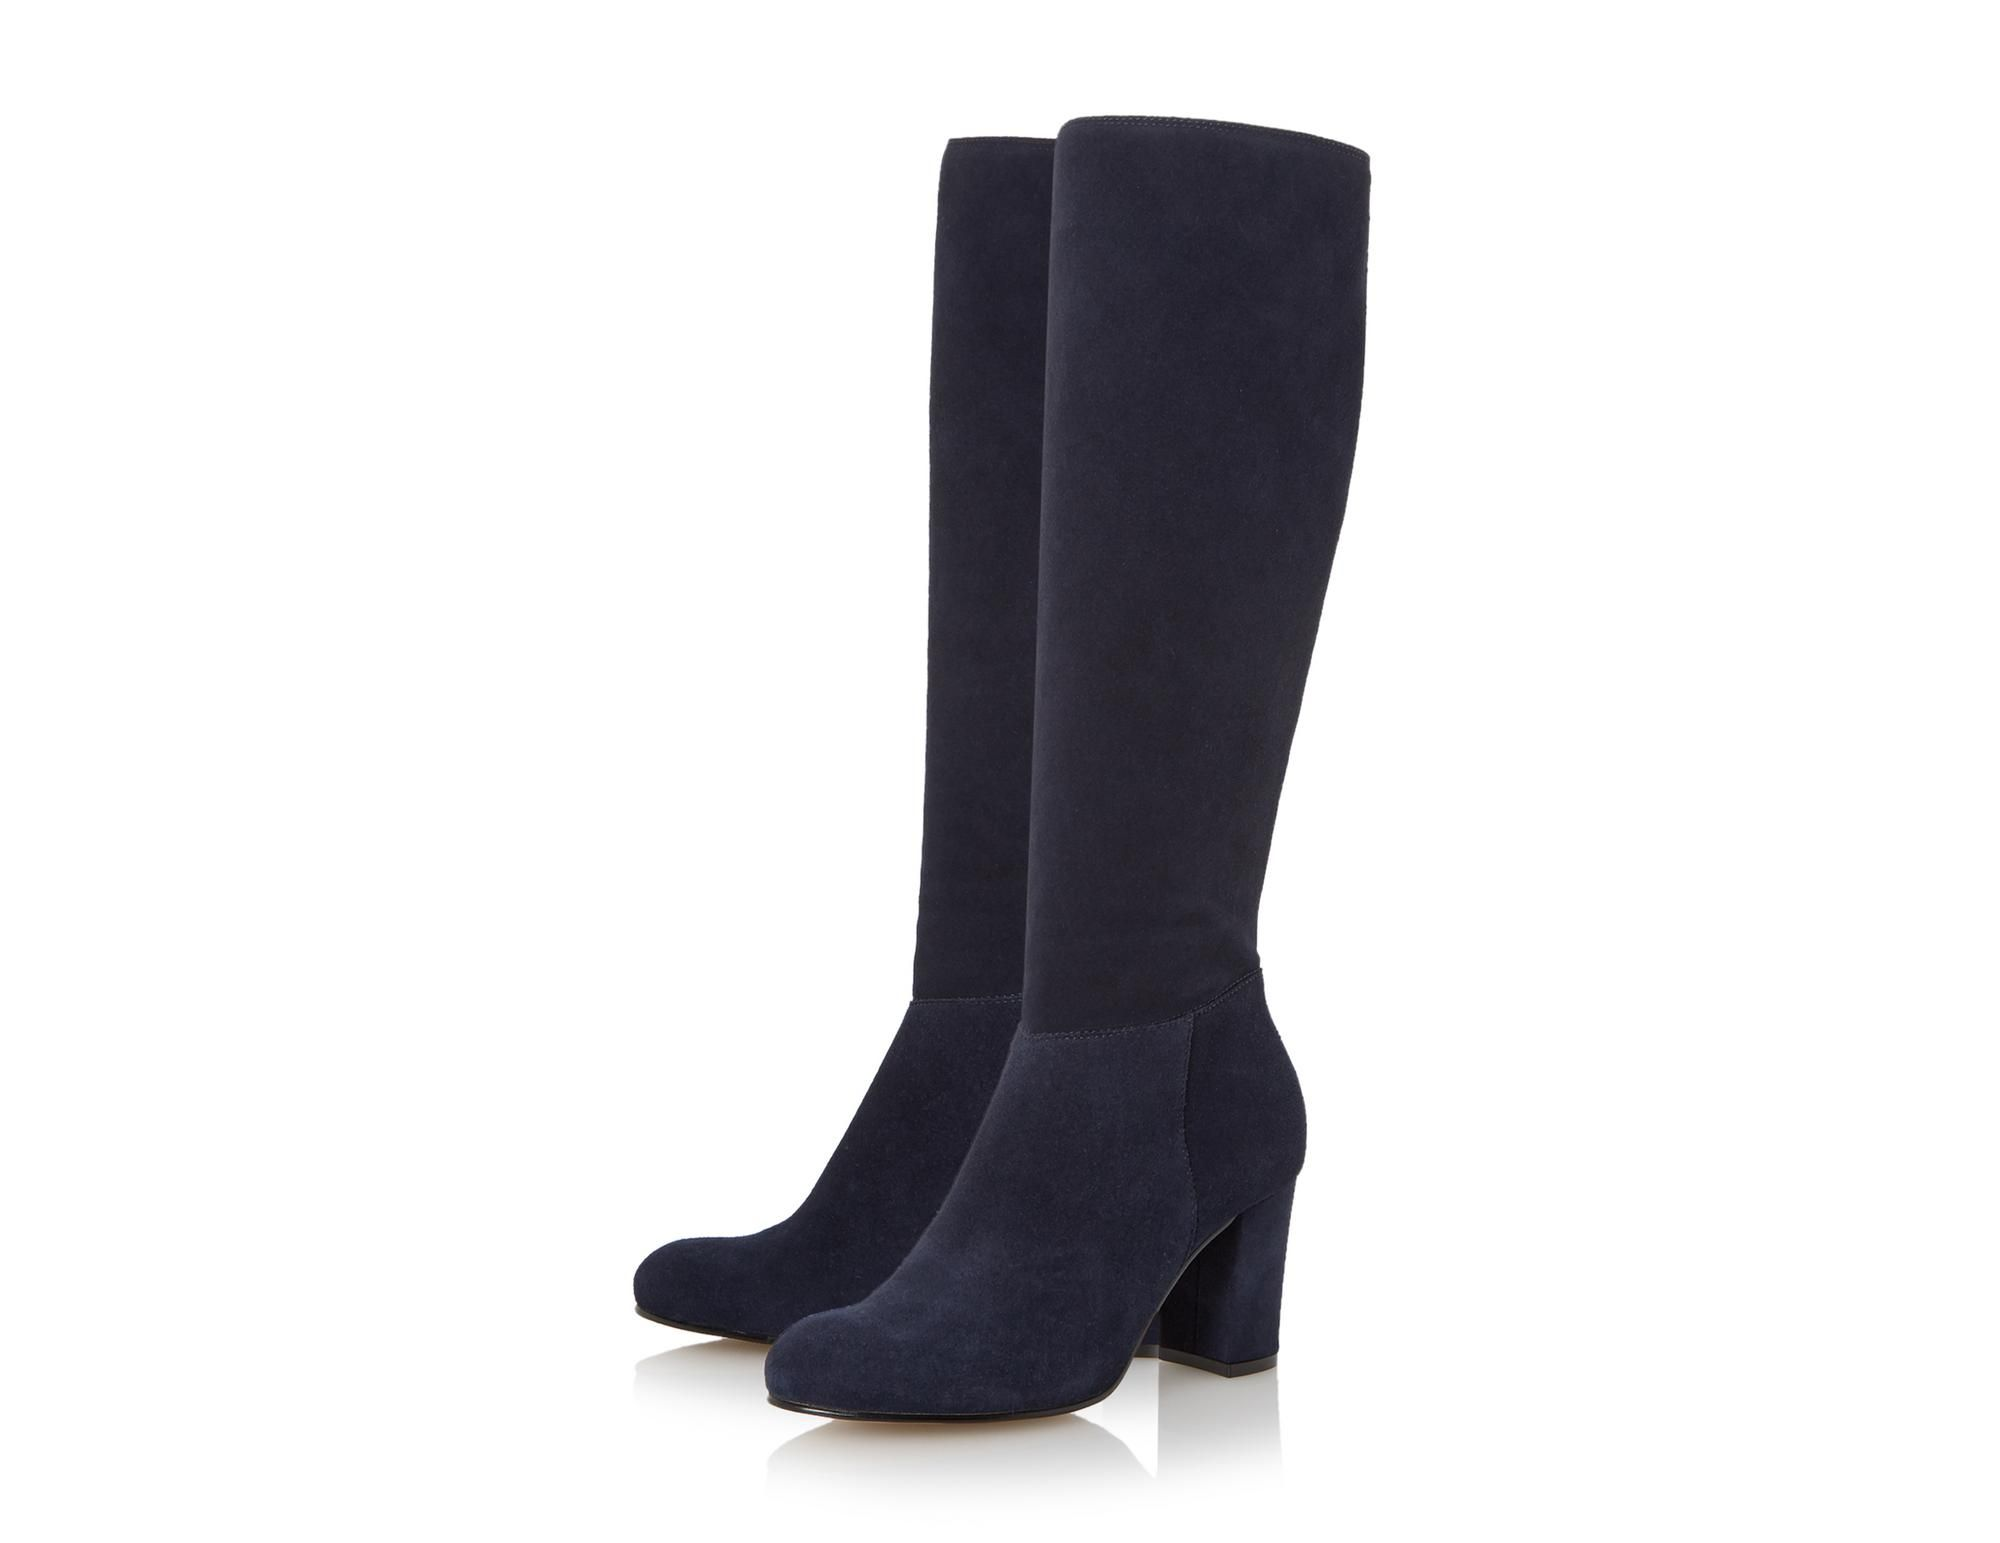 Dune London Toulon Navy Knee High Block Heel Suede Boot